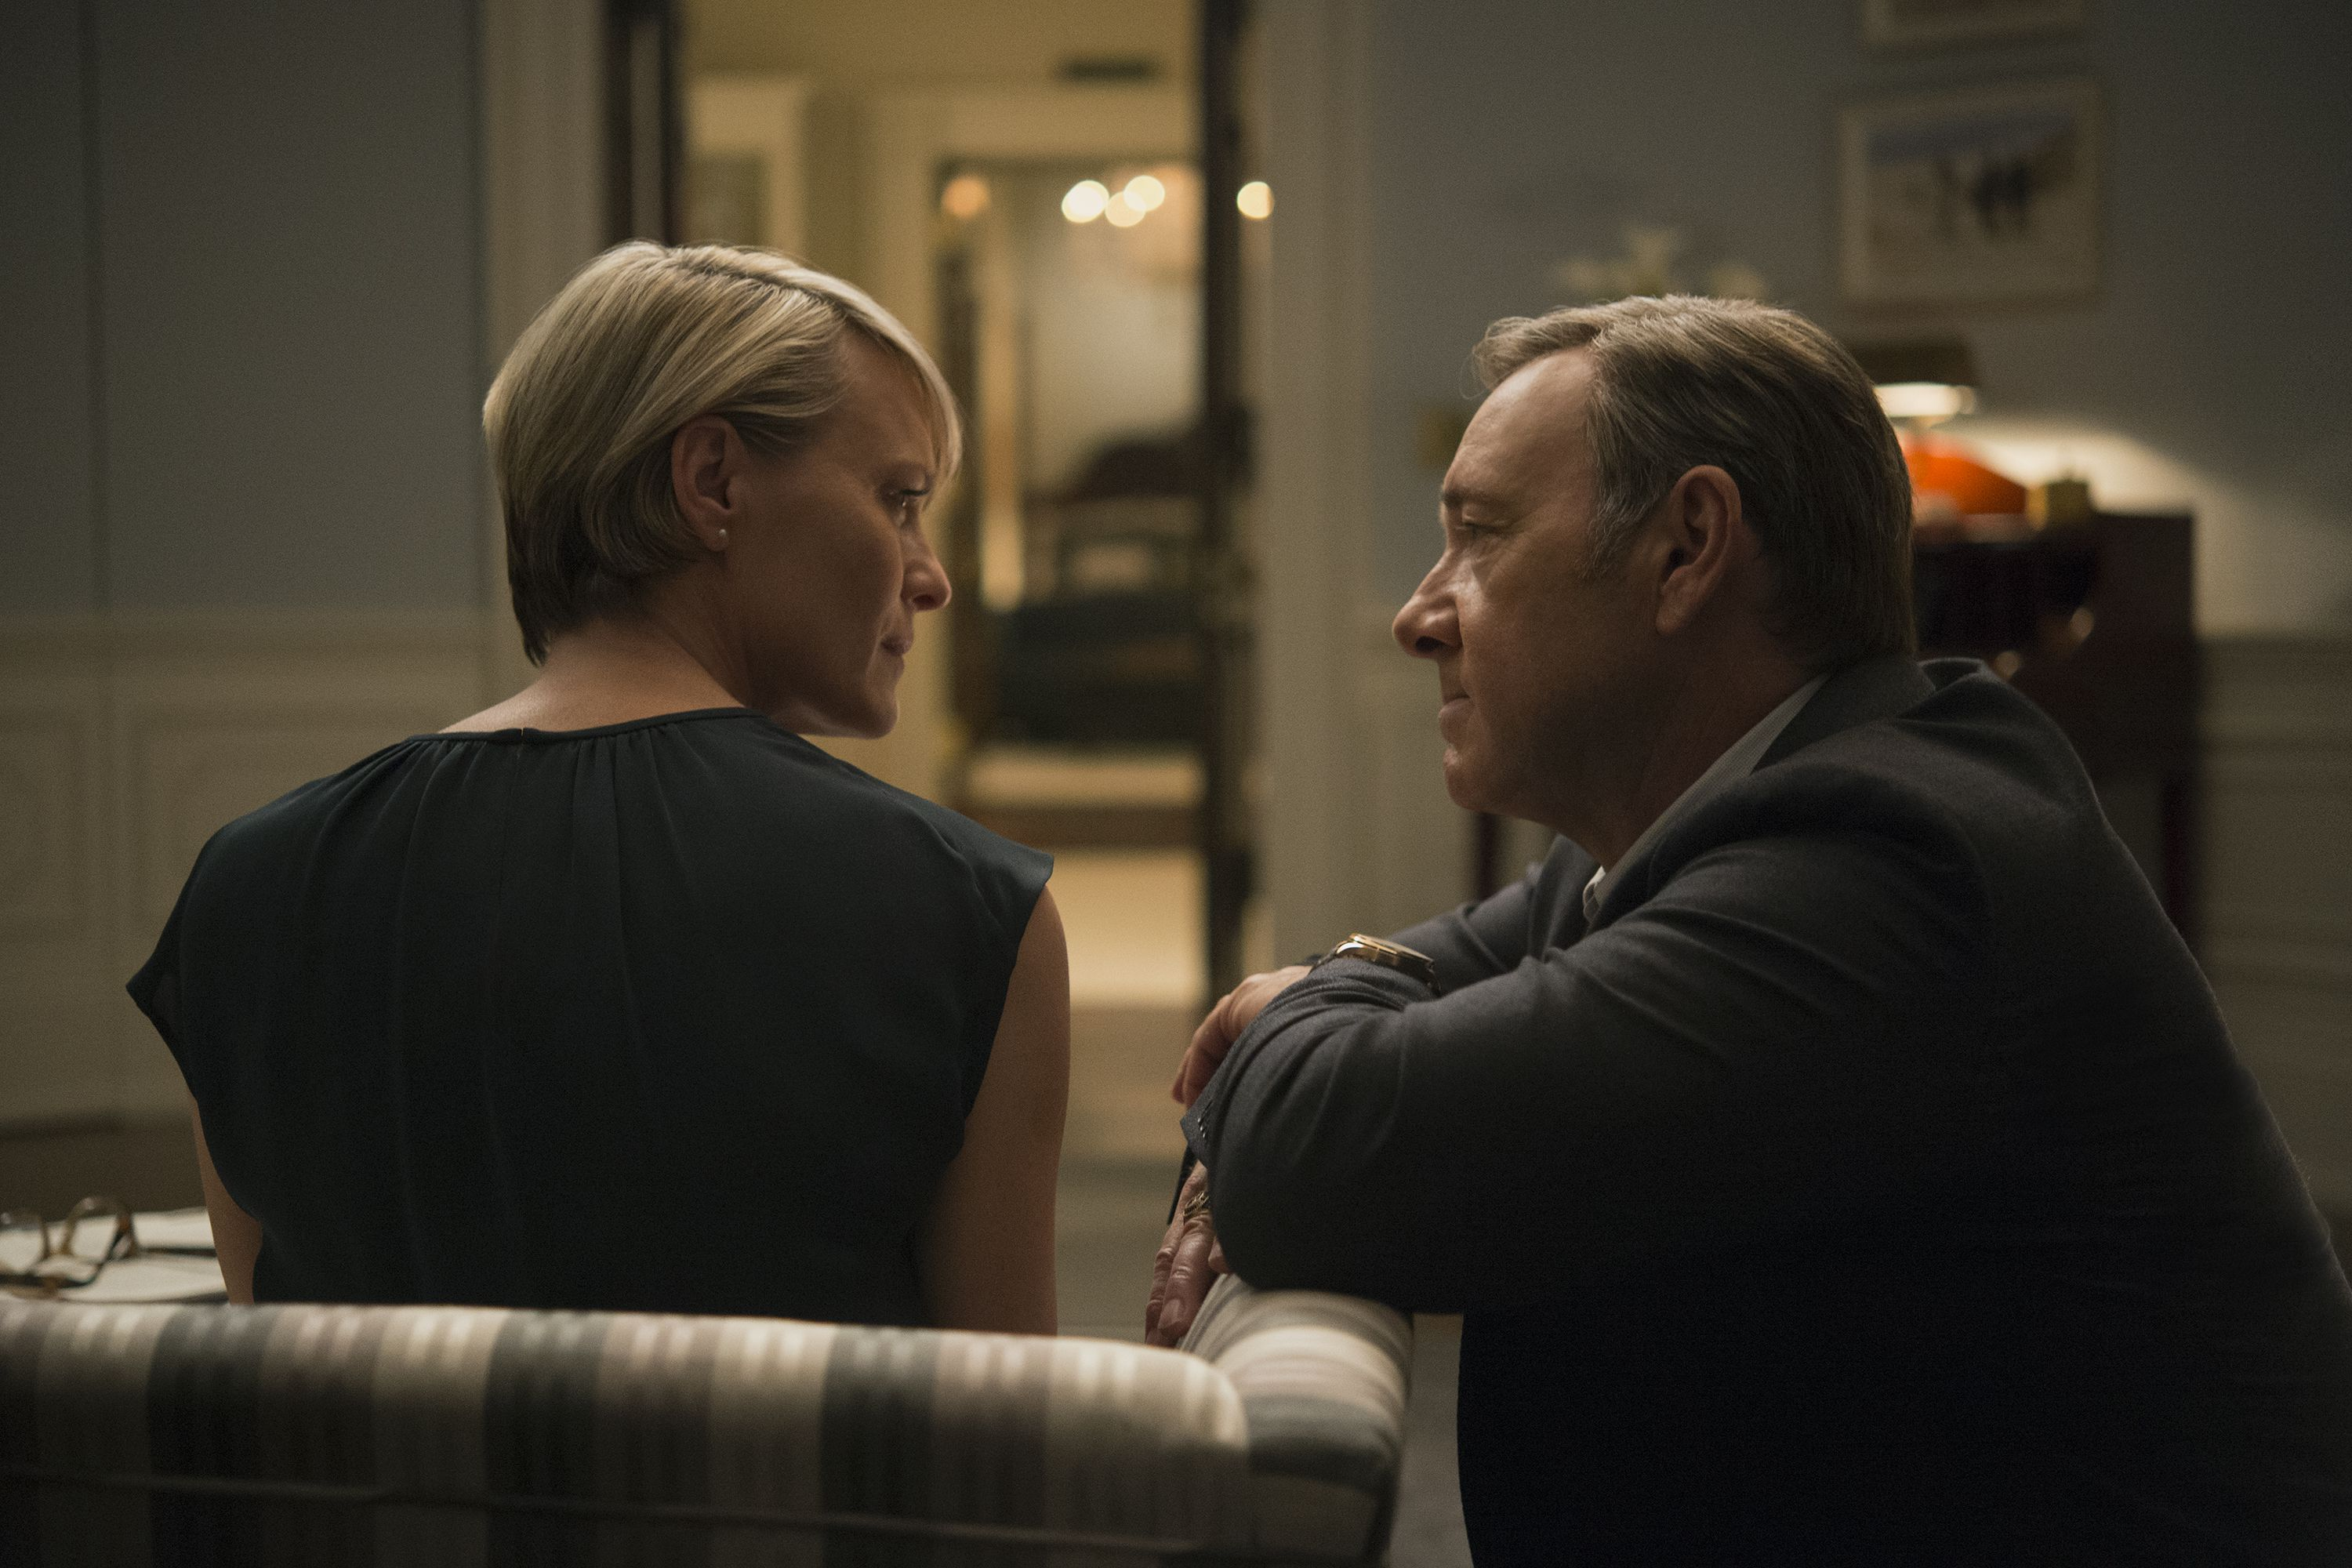 Chapter House of Cards Season 4 Episode 6 Discussion